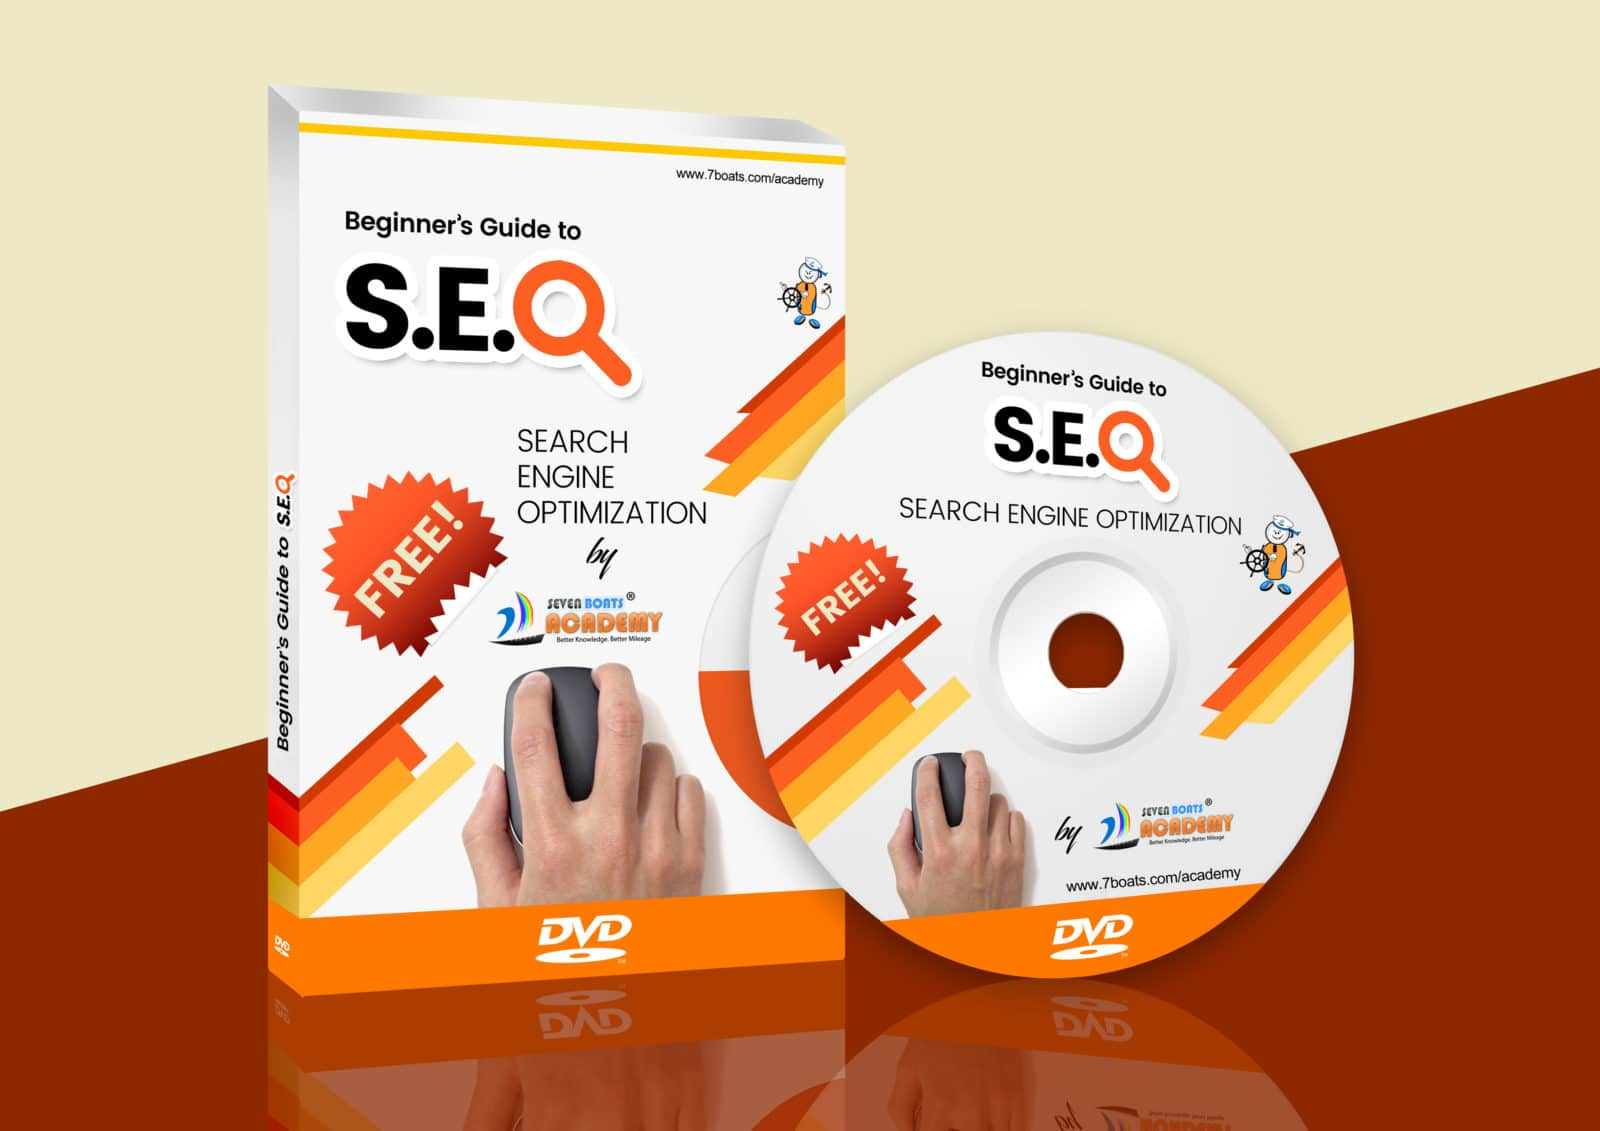 Free SEO certification course from Seven Boats Academy